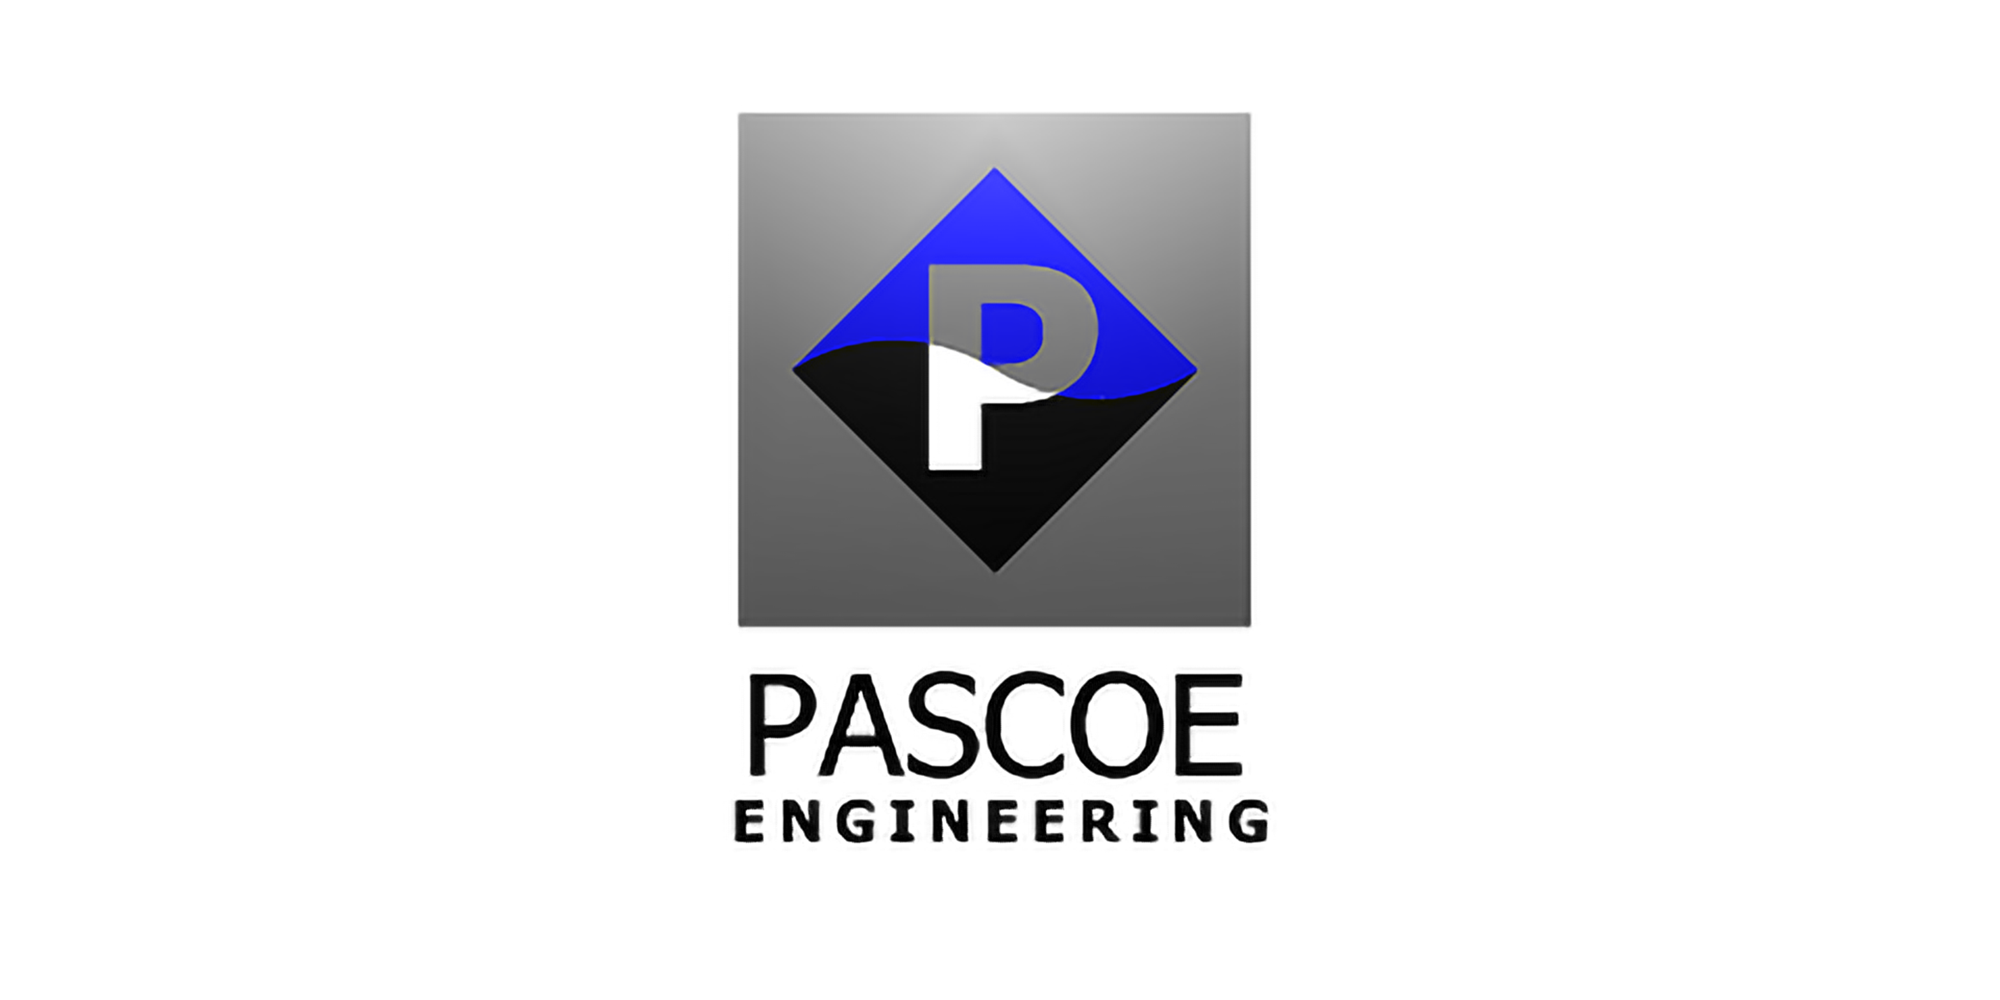 Pascoe Engineering logo